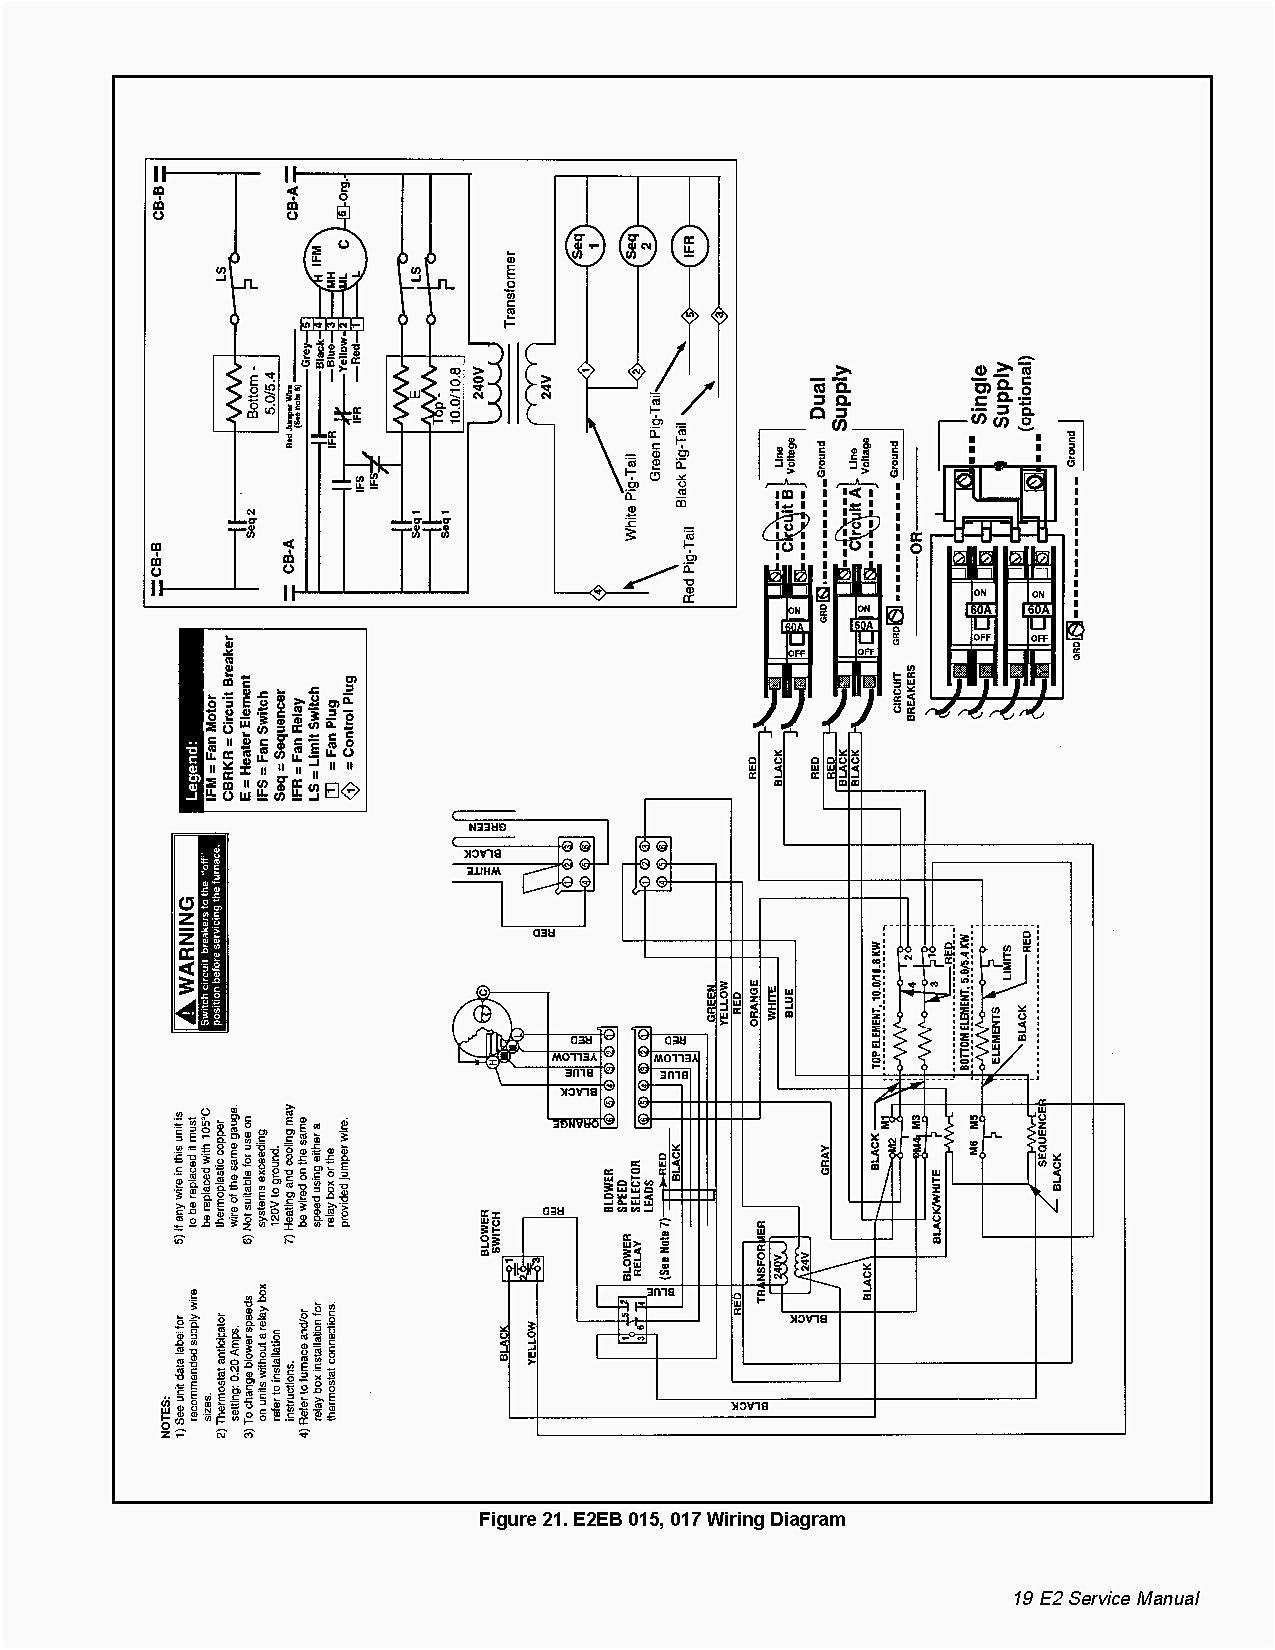 Nordyne Furnace Wiring Diagram Manual E2eb 015ha Bright Wire With: 2 Wire 240v Wiring Diagram At Chusao.net